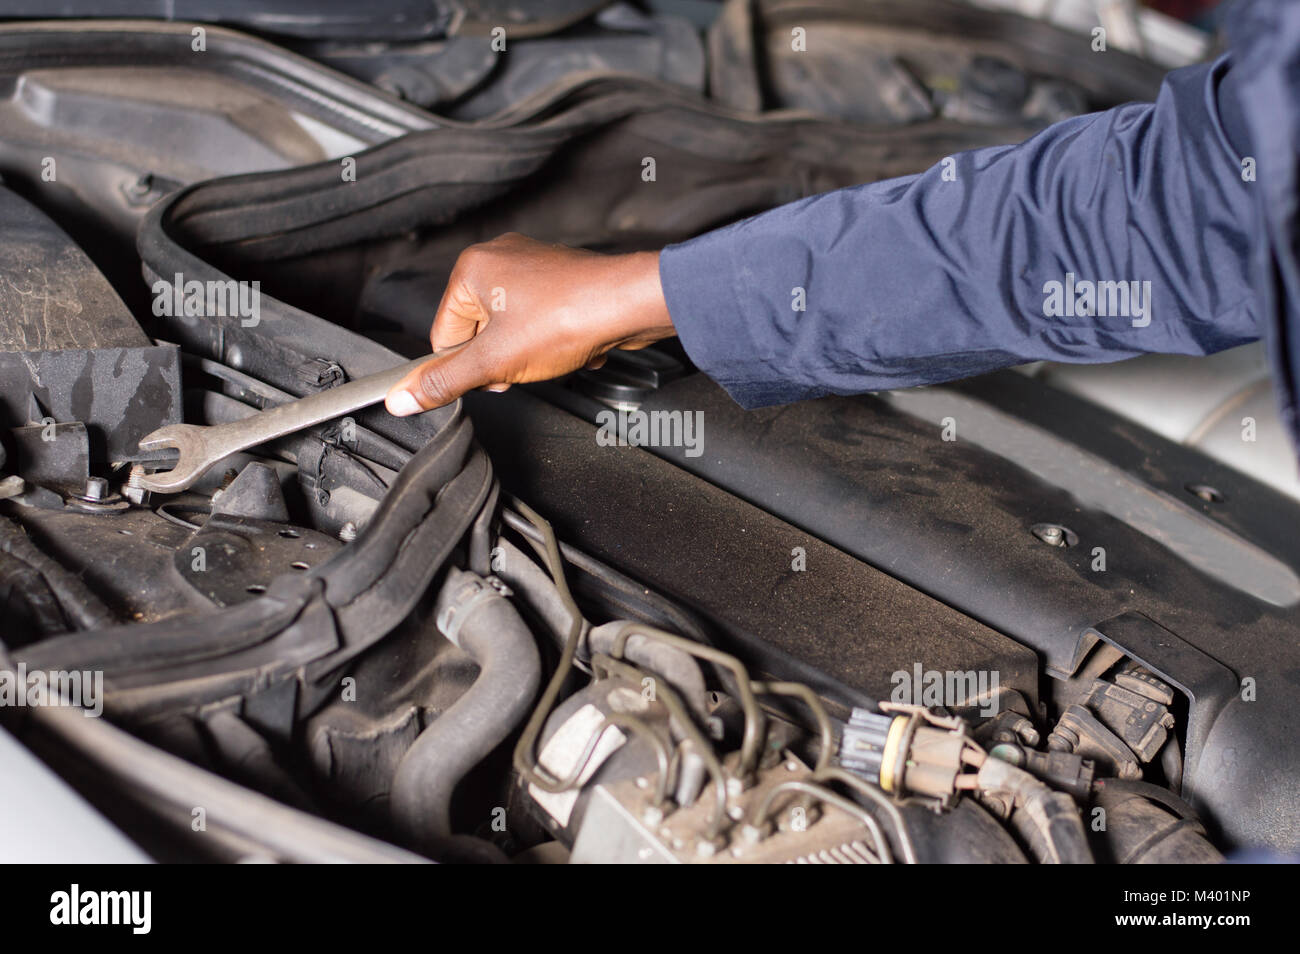 Close-up of a hand holding a key on the engine of a broken car. - Stock Image